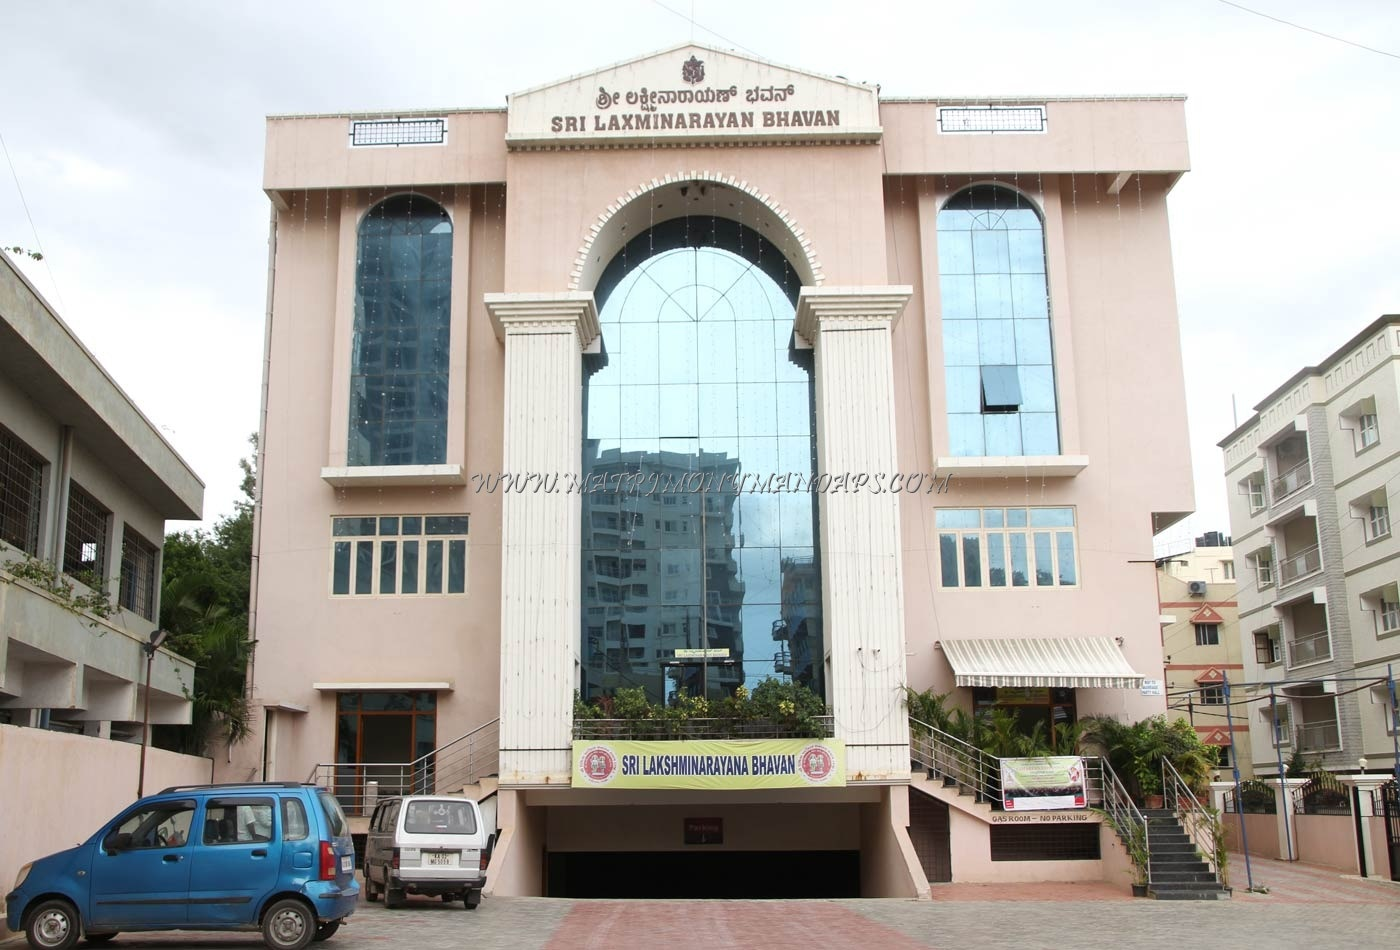 Find the availability of the Sri Laxmi Narayan Bhavan in KR Puram, Bangalore and avail special offers